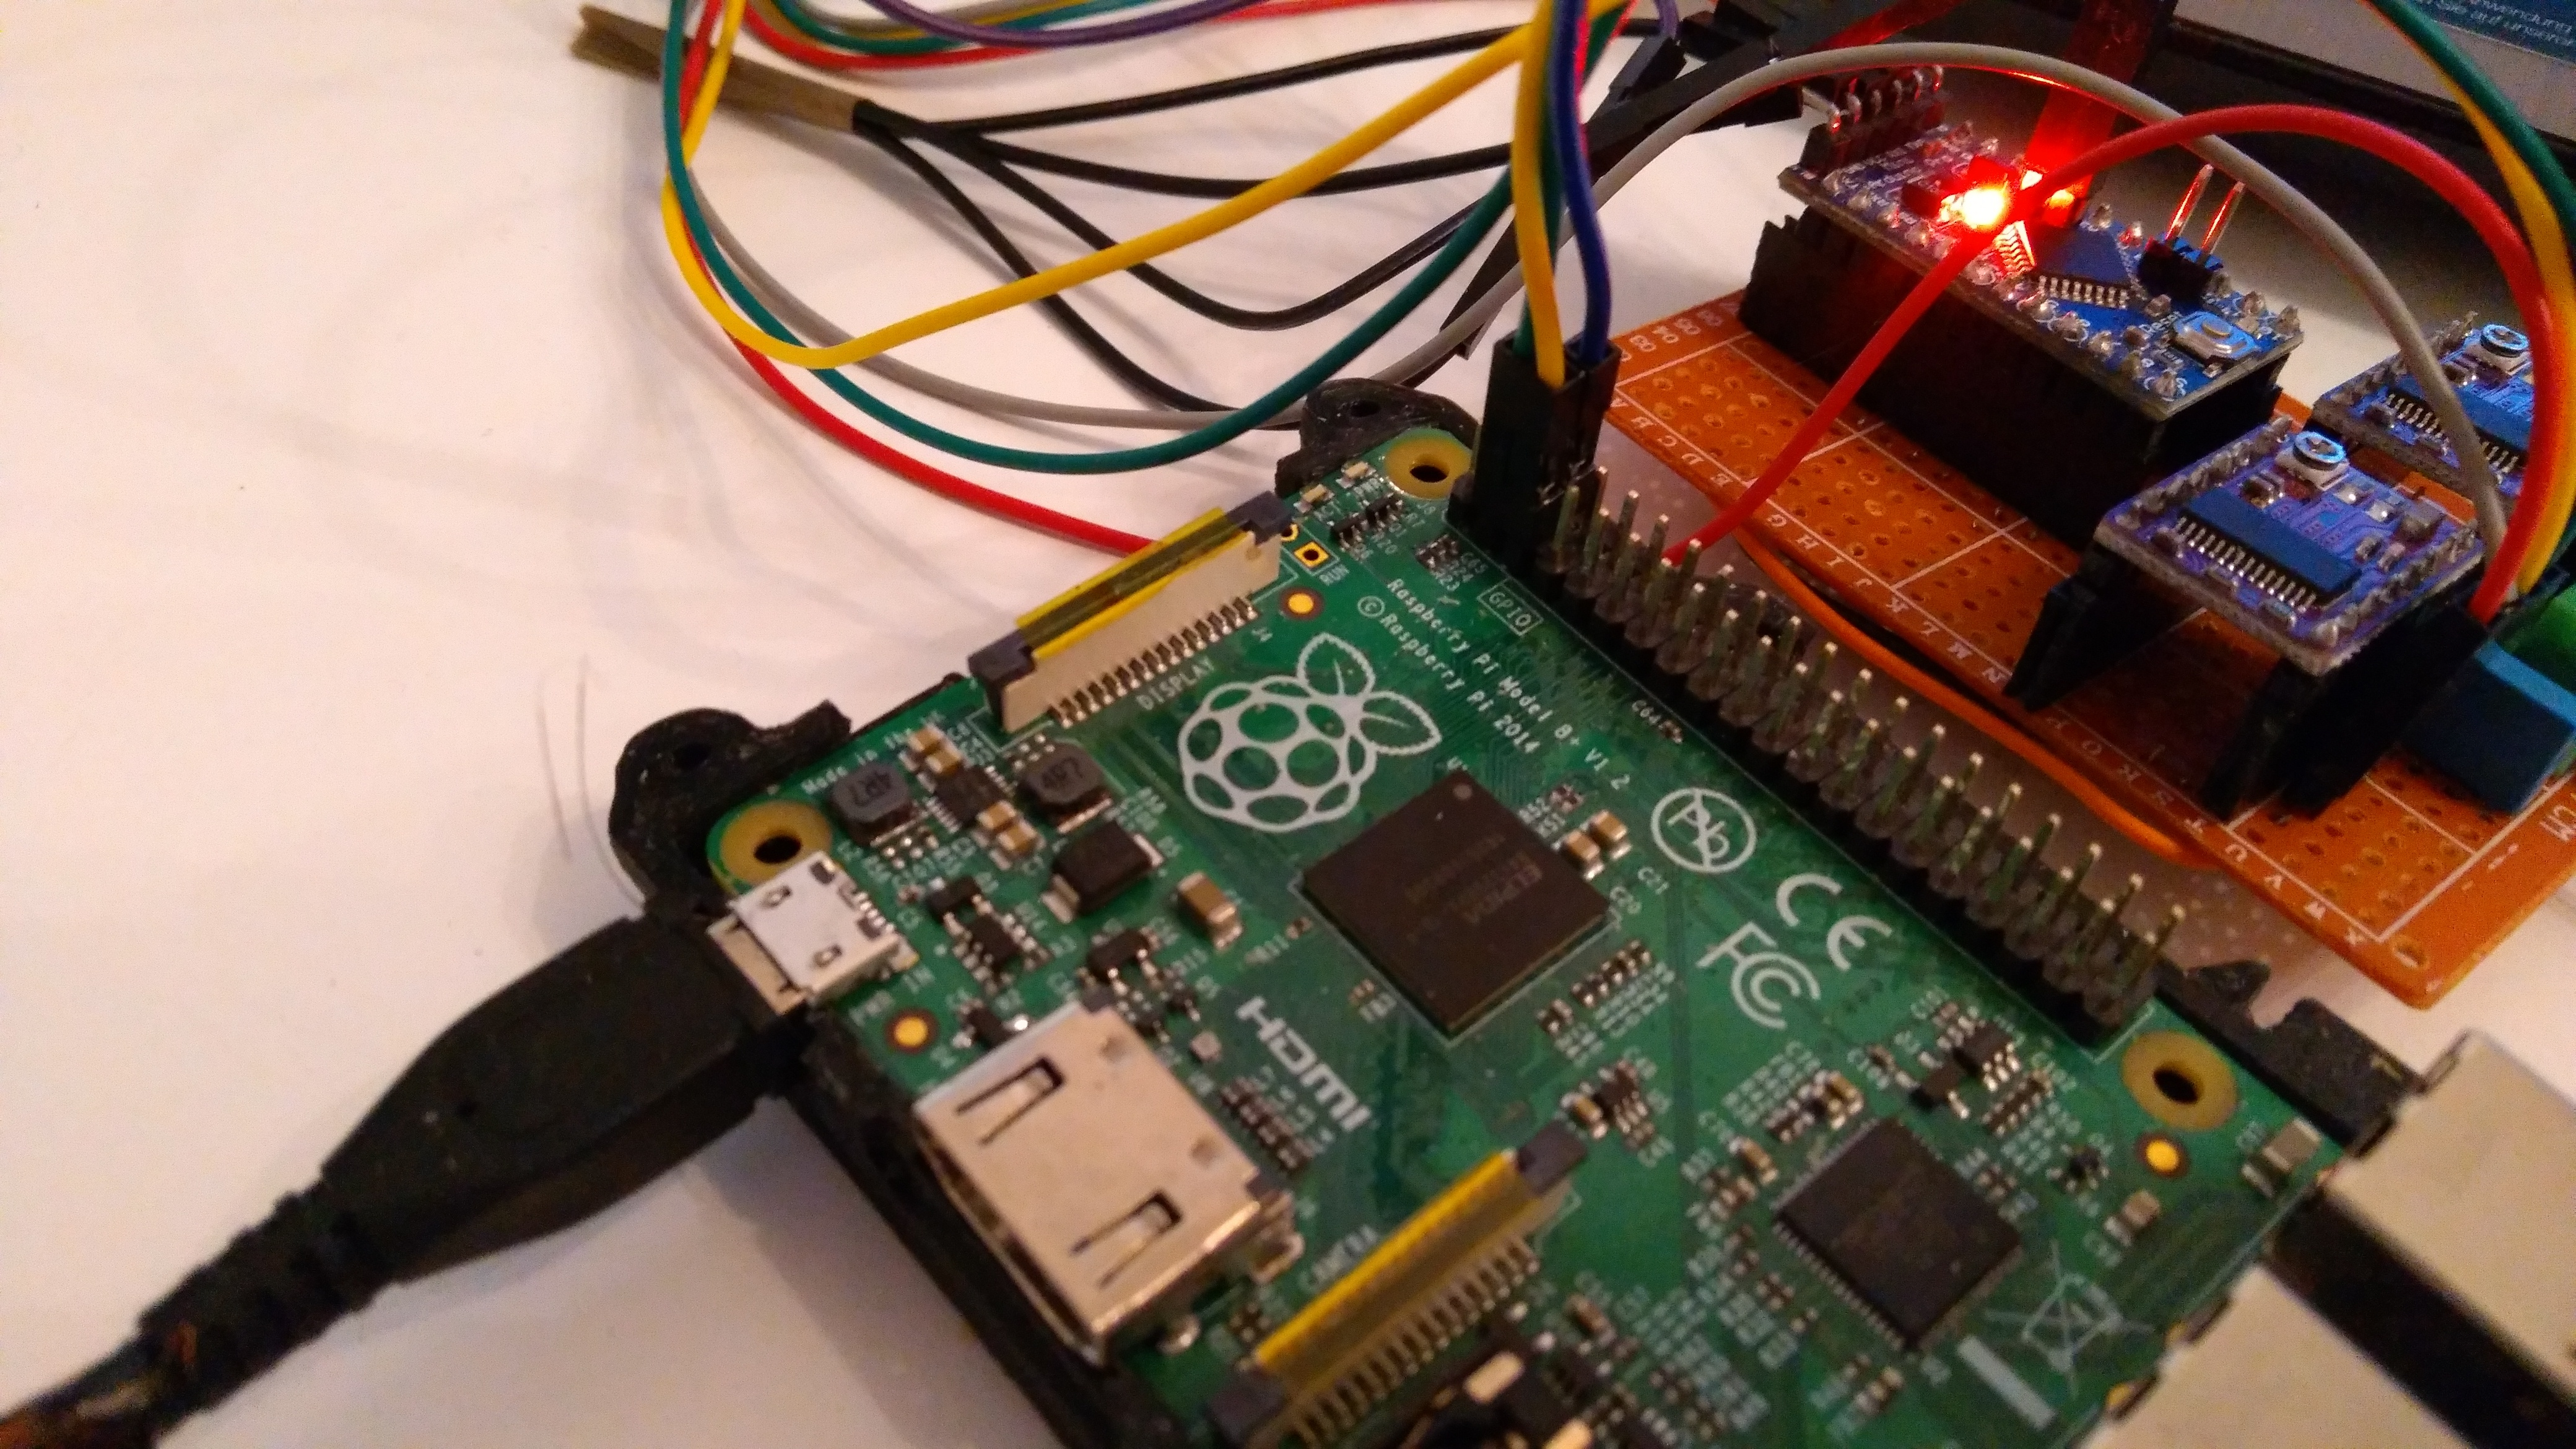 I2C communication between RaspberryPi B+ and Arduino pro mini